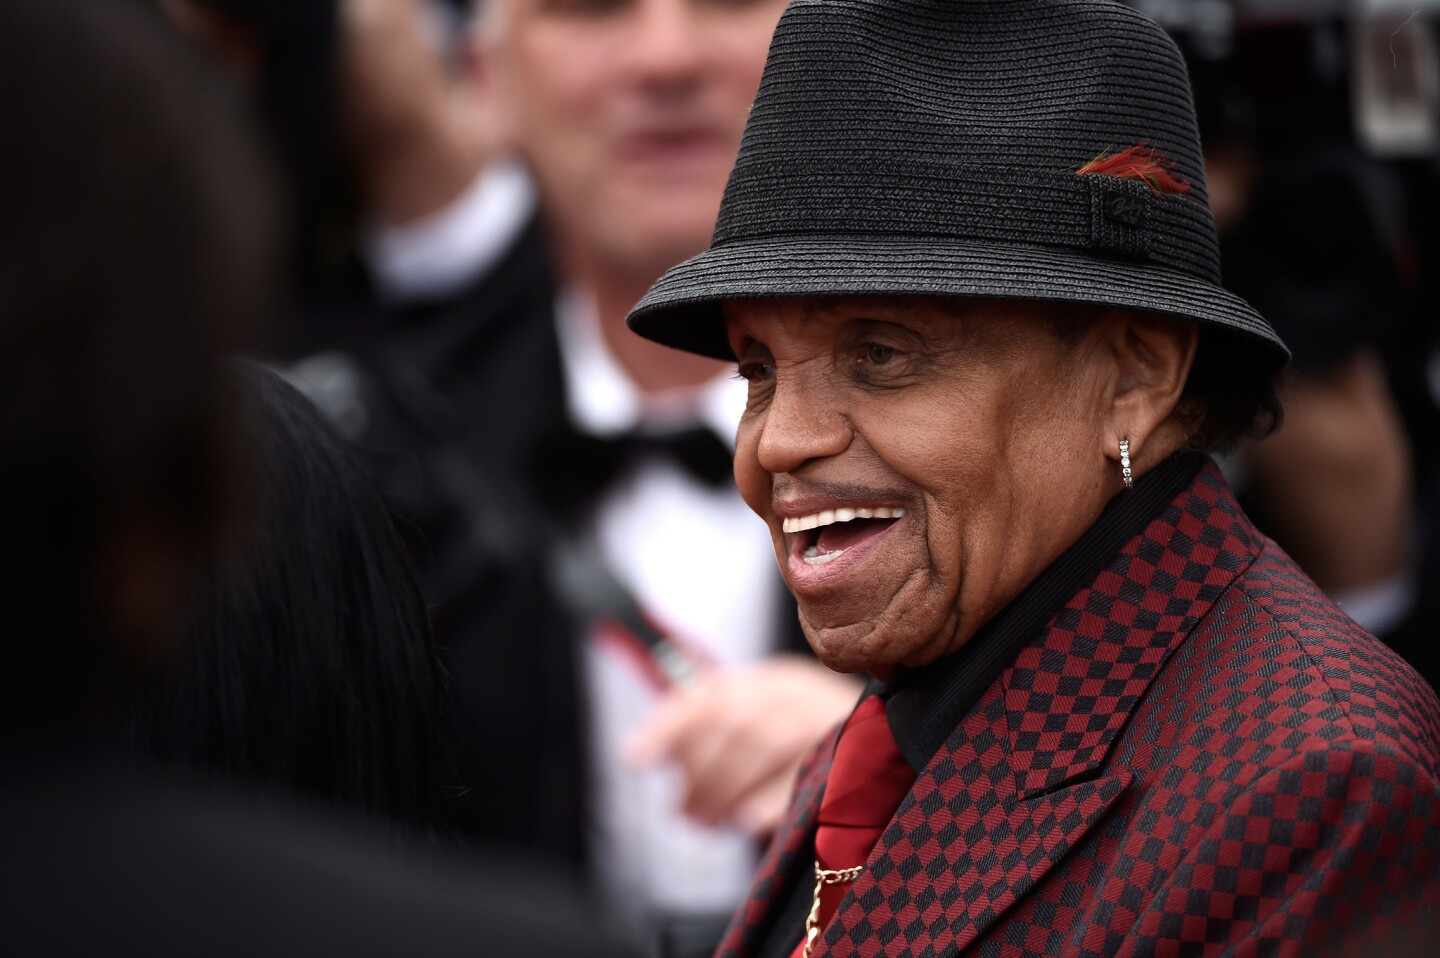 """Joe Jackson attends the premiere of """"Sicario"""" at the 2015 Cannes Film Festival in France."""